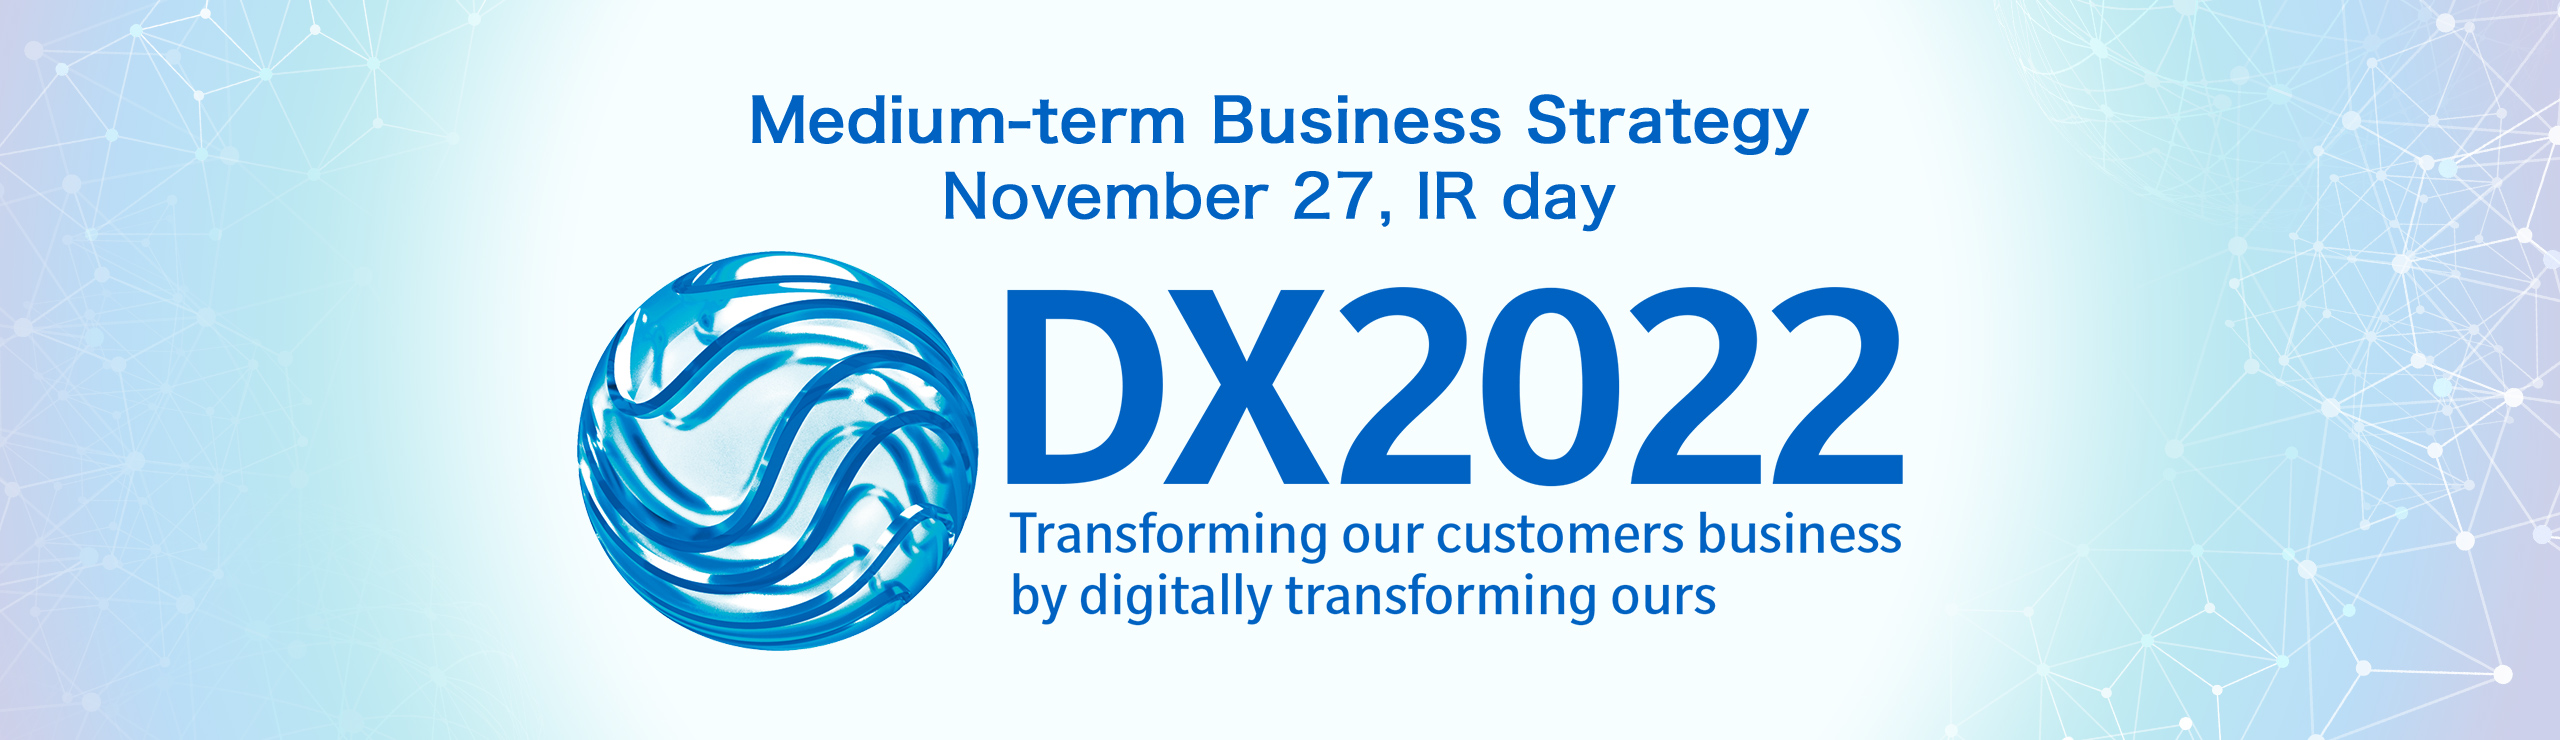 IR day Medium-Term Business Strategy「DX2022」